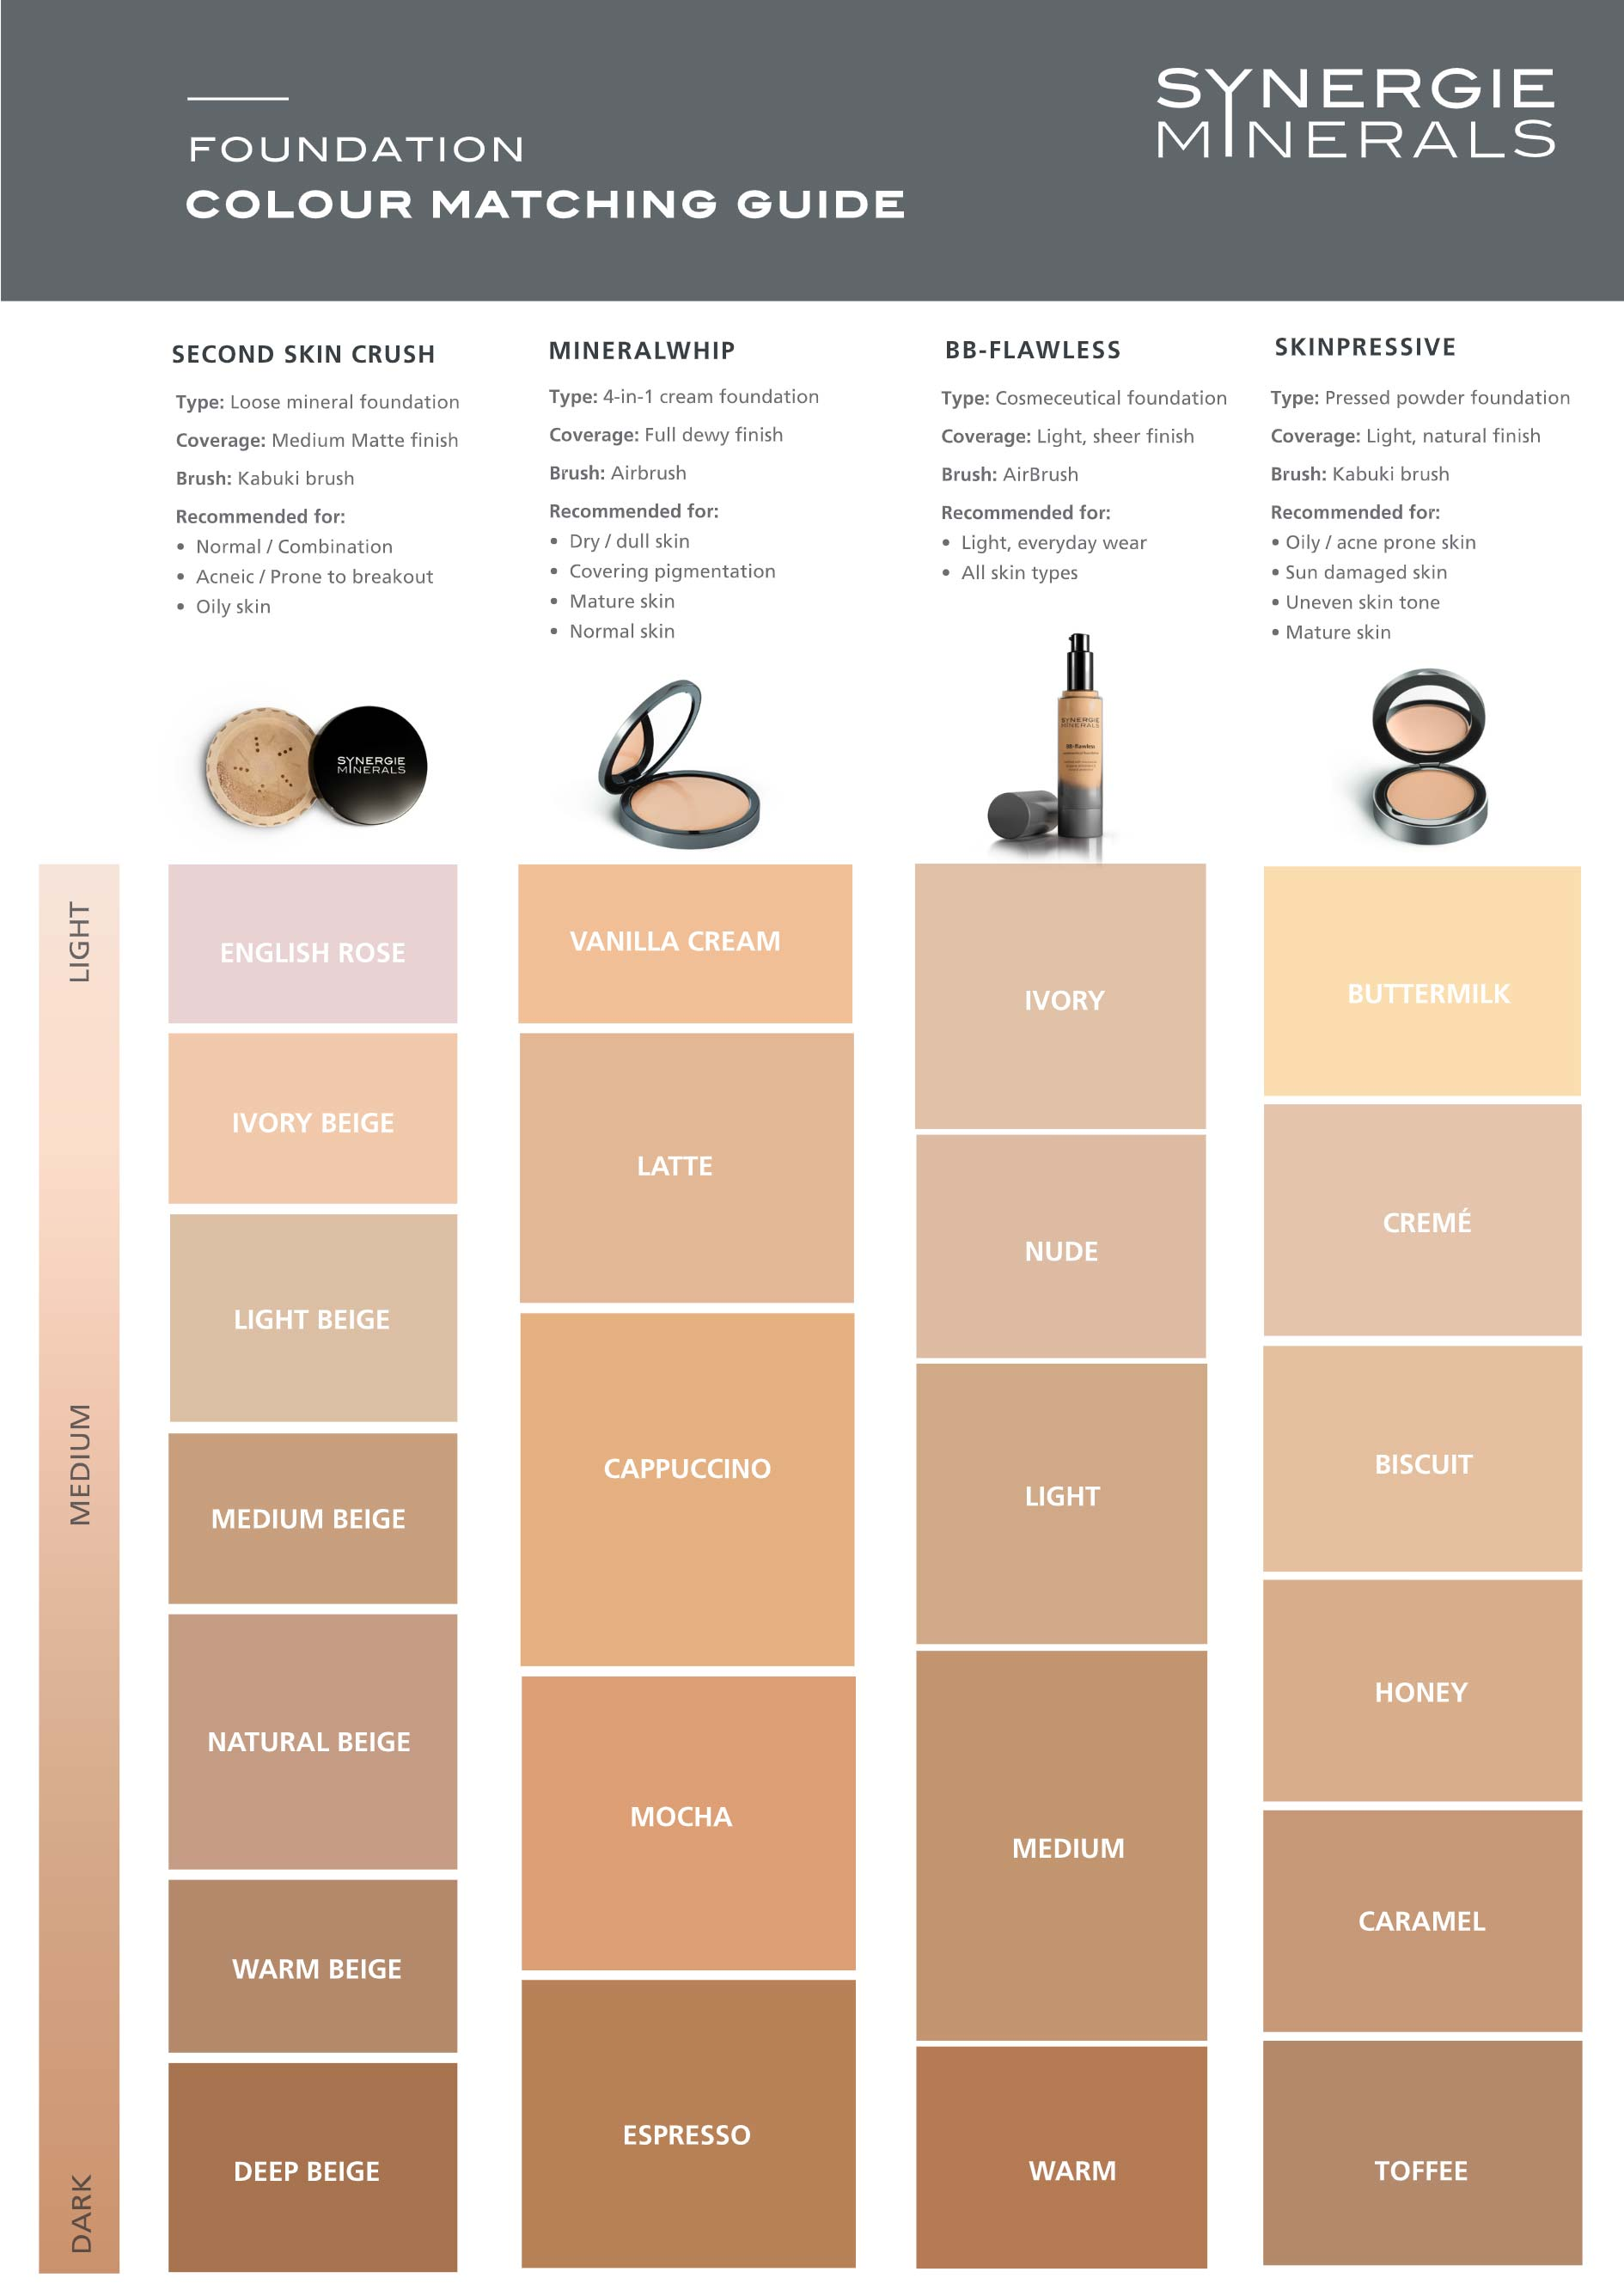 Synergie Minerals Foundation Colour Matching Guide